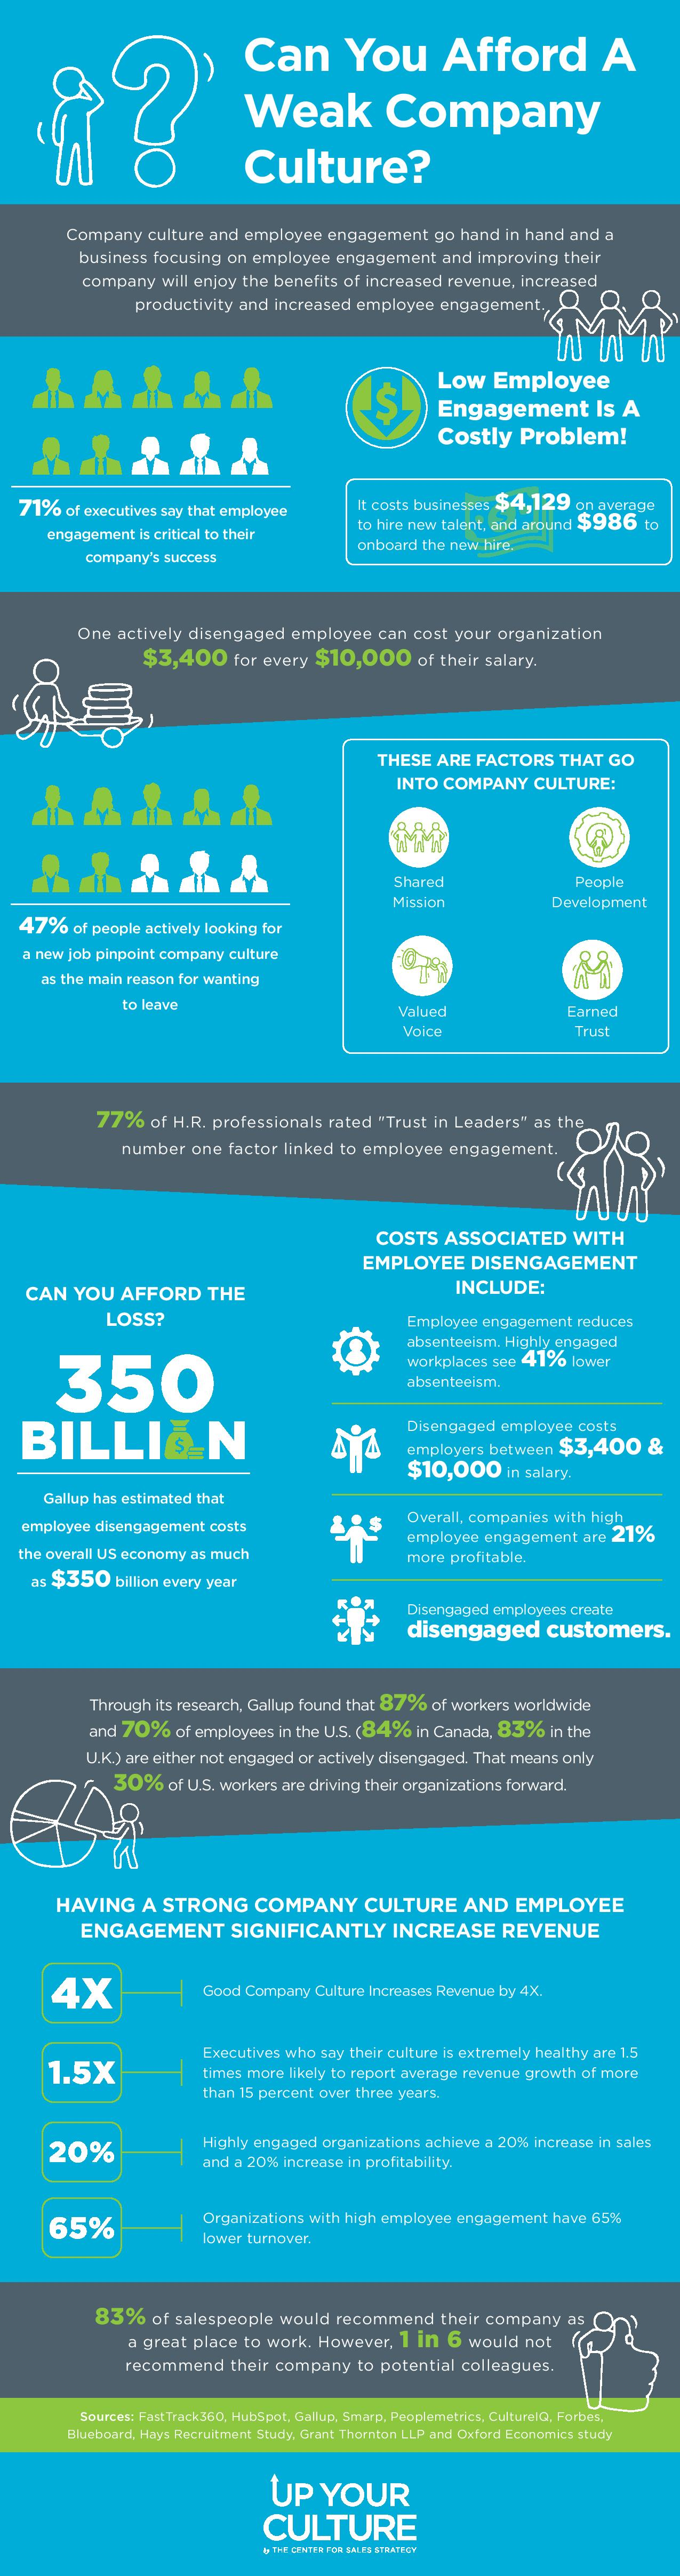 FINAL Can You Afford A Weak Company Culture-Infographic-page-001